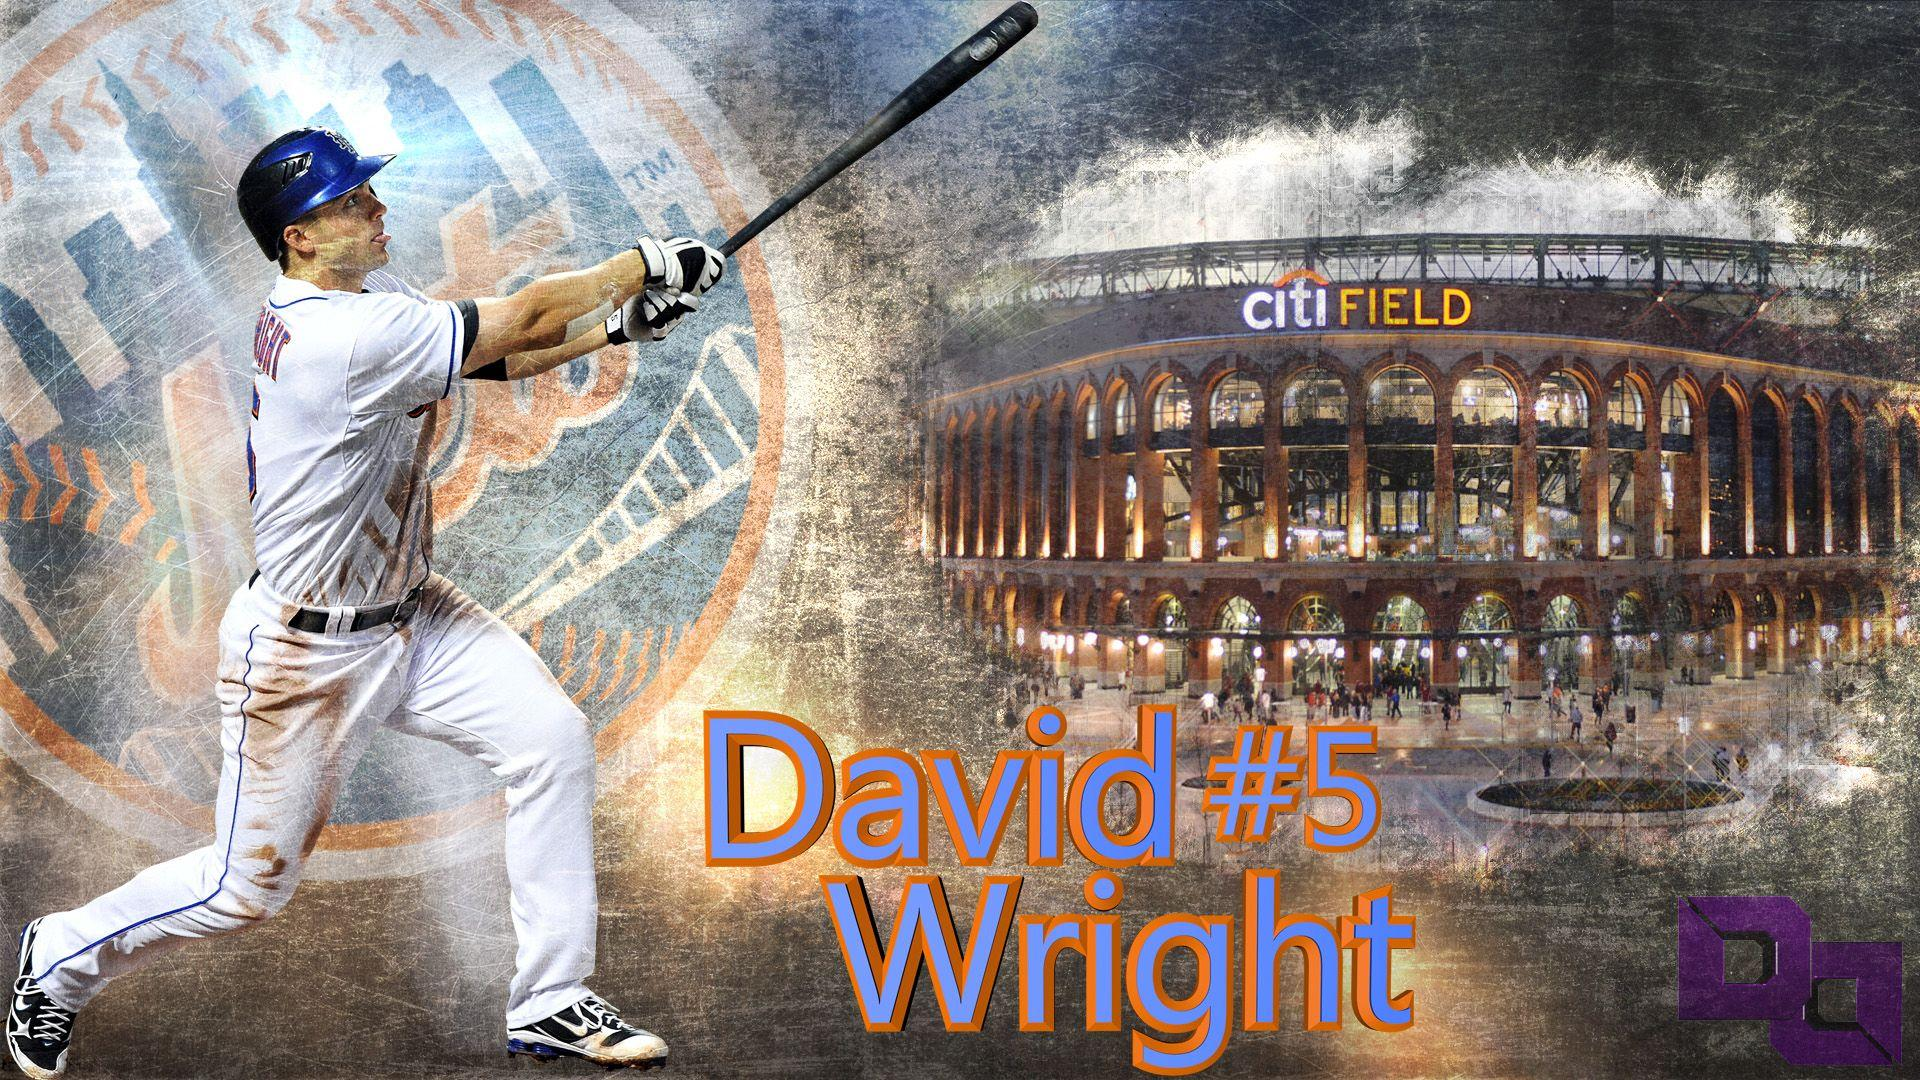 David Wright Of The New York Mets Pictures, Photos, and Images for ...